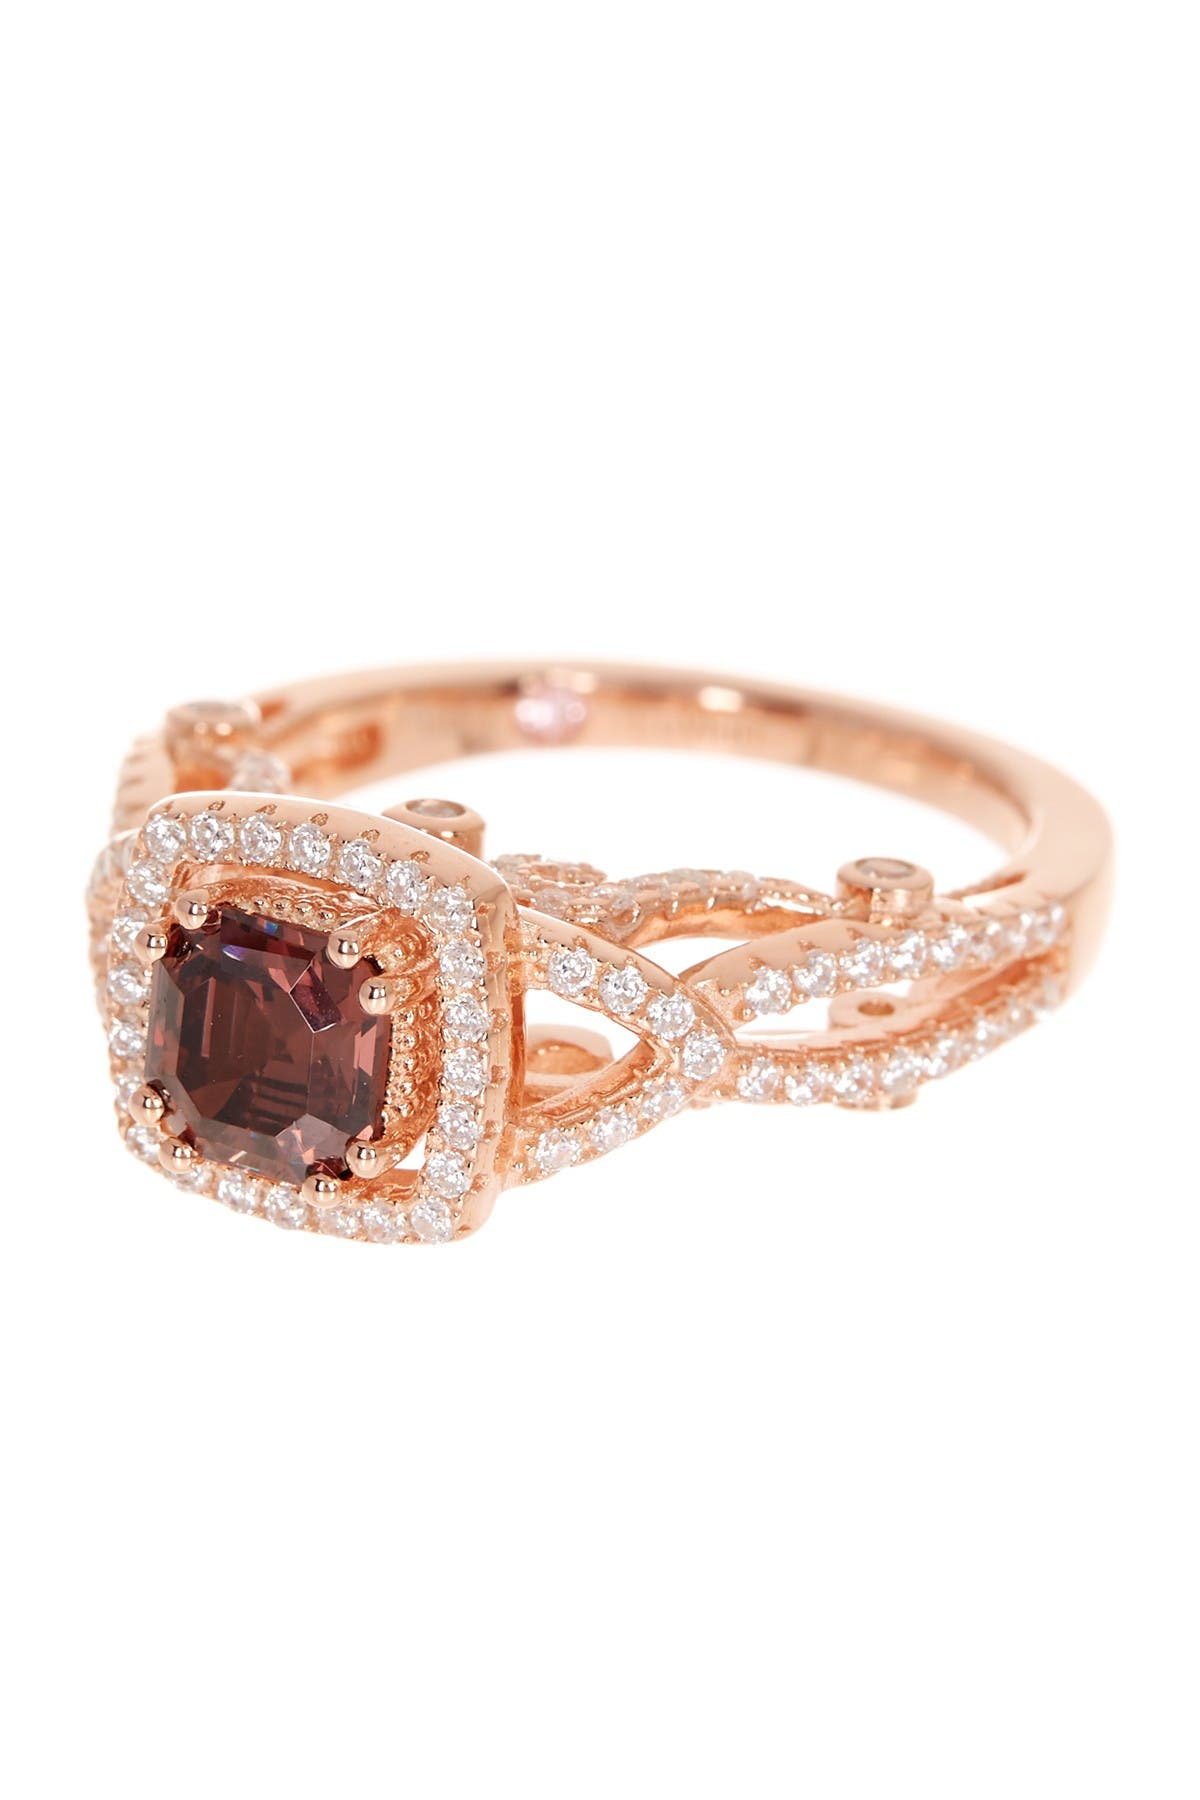 Image of Suzy Levian Rose Gold Plated Sterling Silver Asscher-Cut Brown & White CZ Engagement Ring